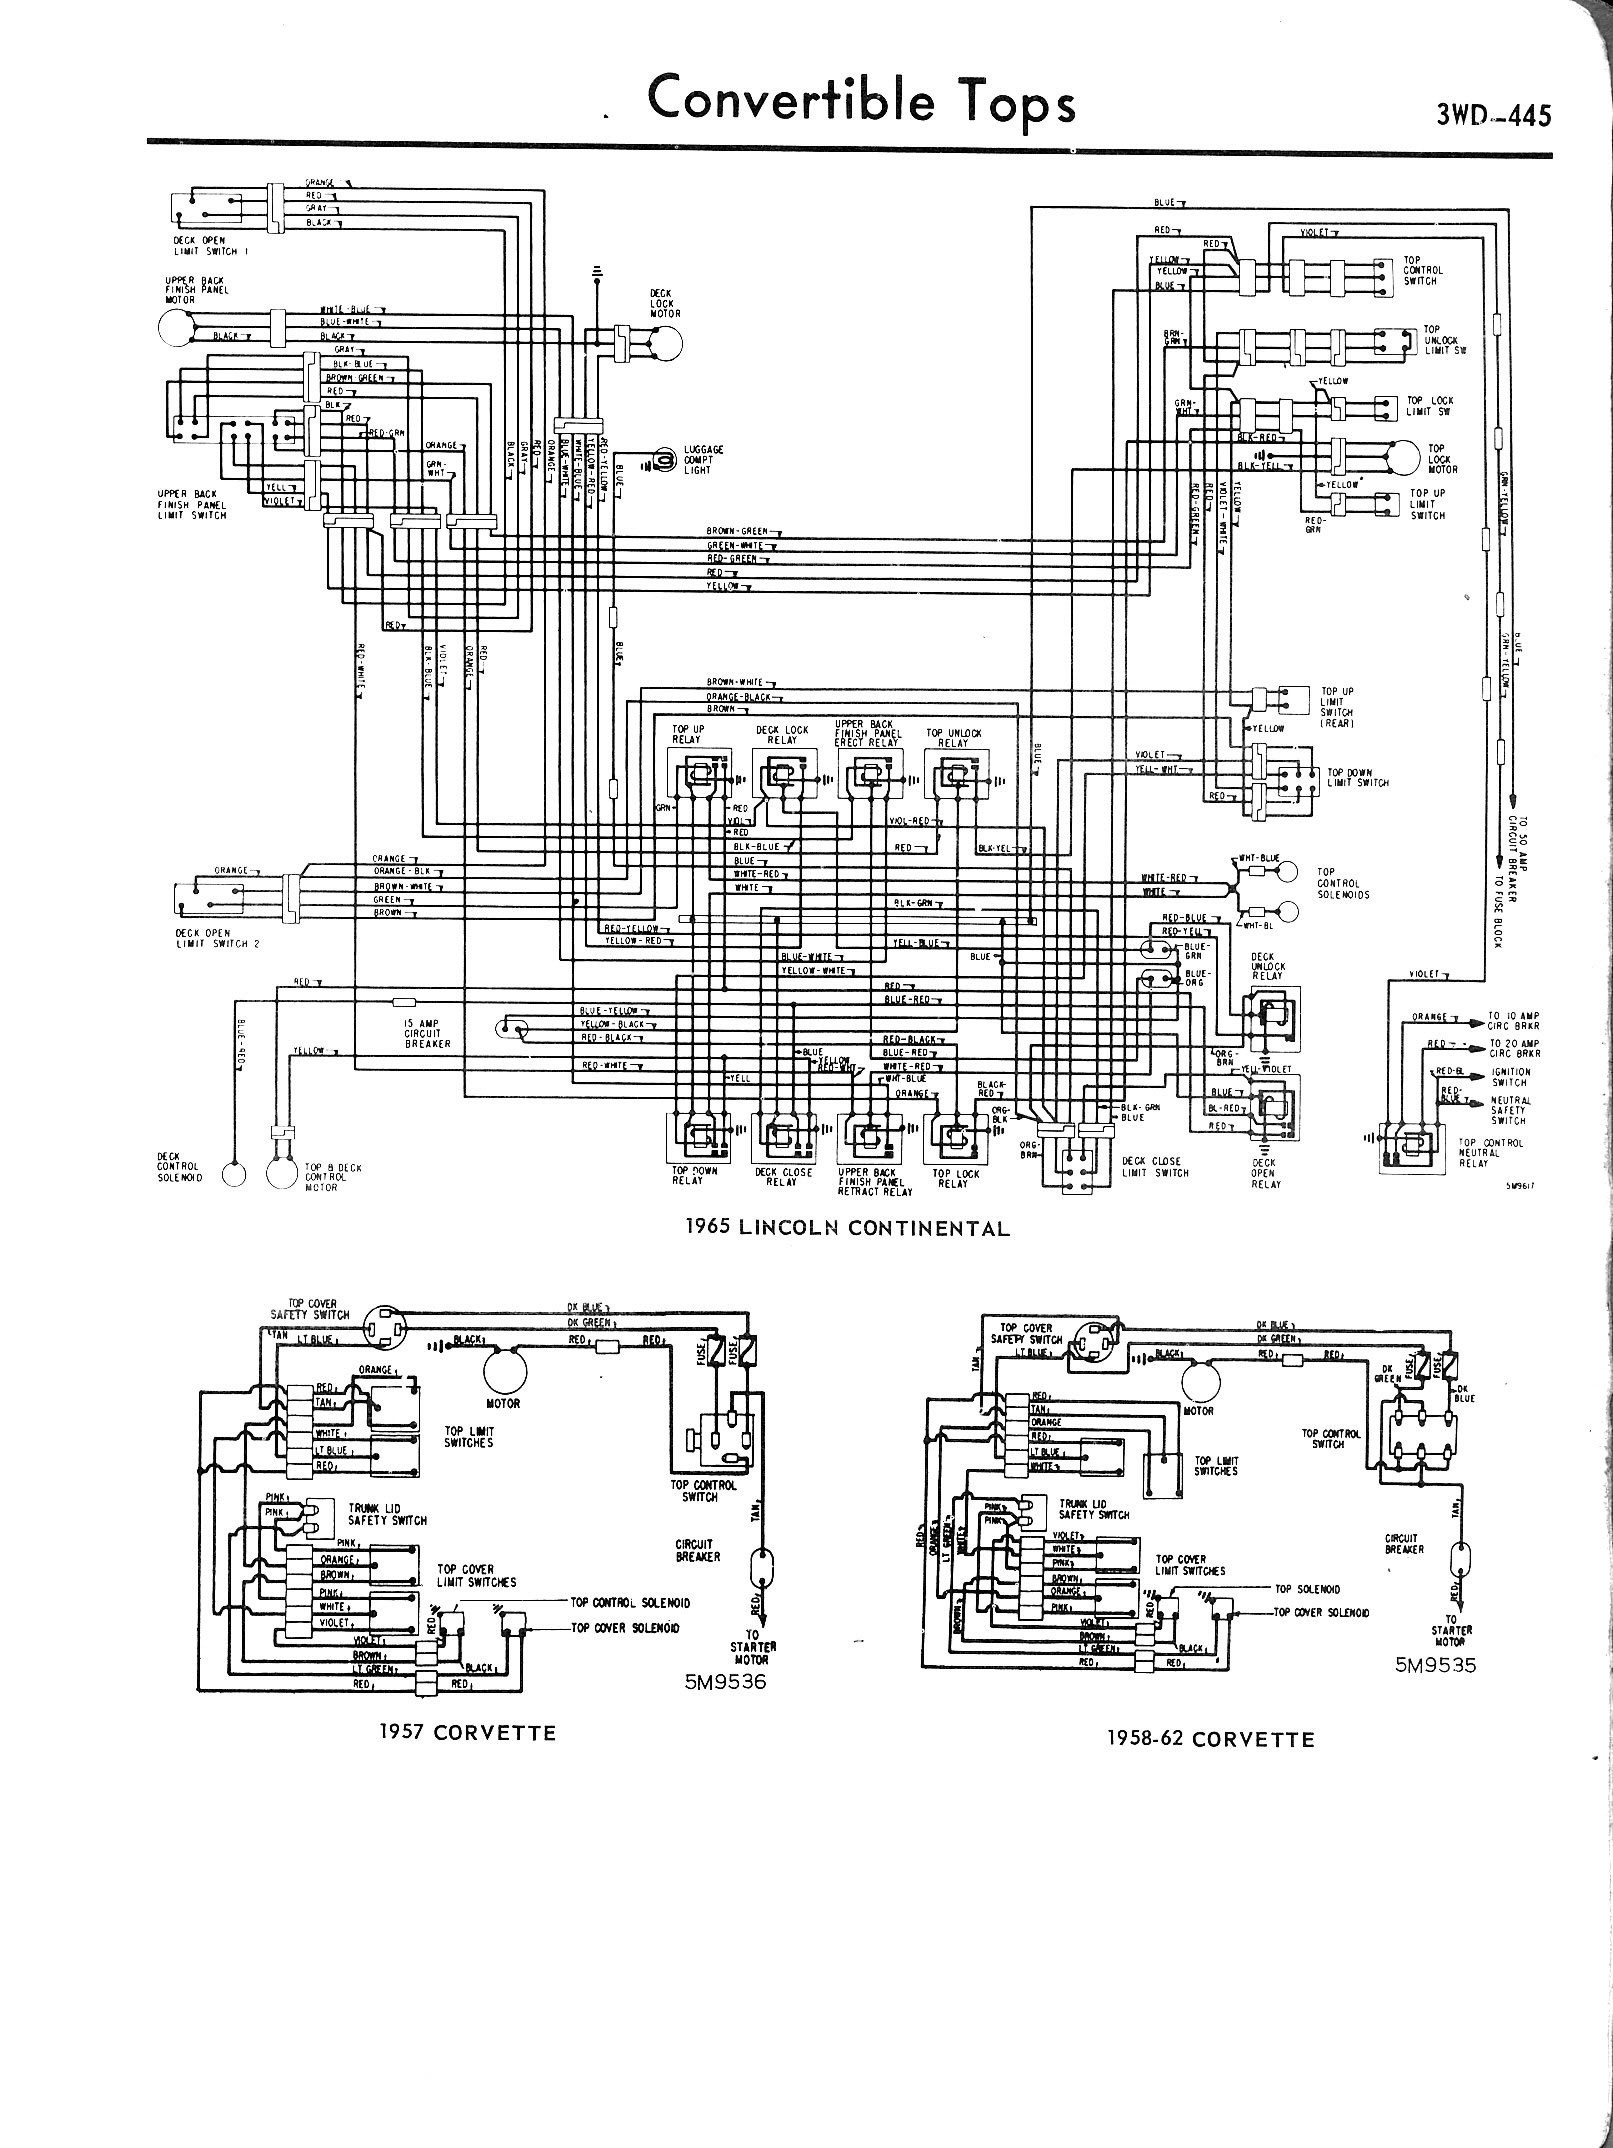 3WD 445_jpg 57 convertible wiring harness conv top trifive com, 1955 chevy 1957 bel air wiring diagram at gsmx.co